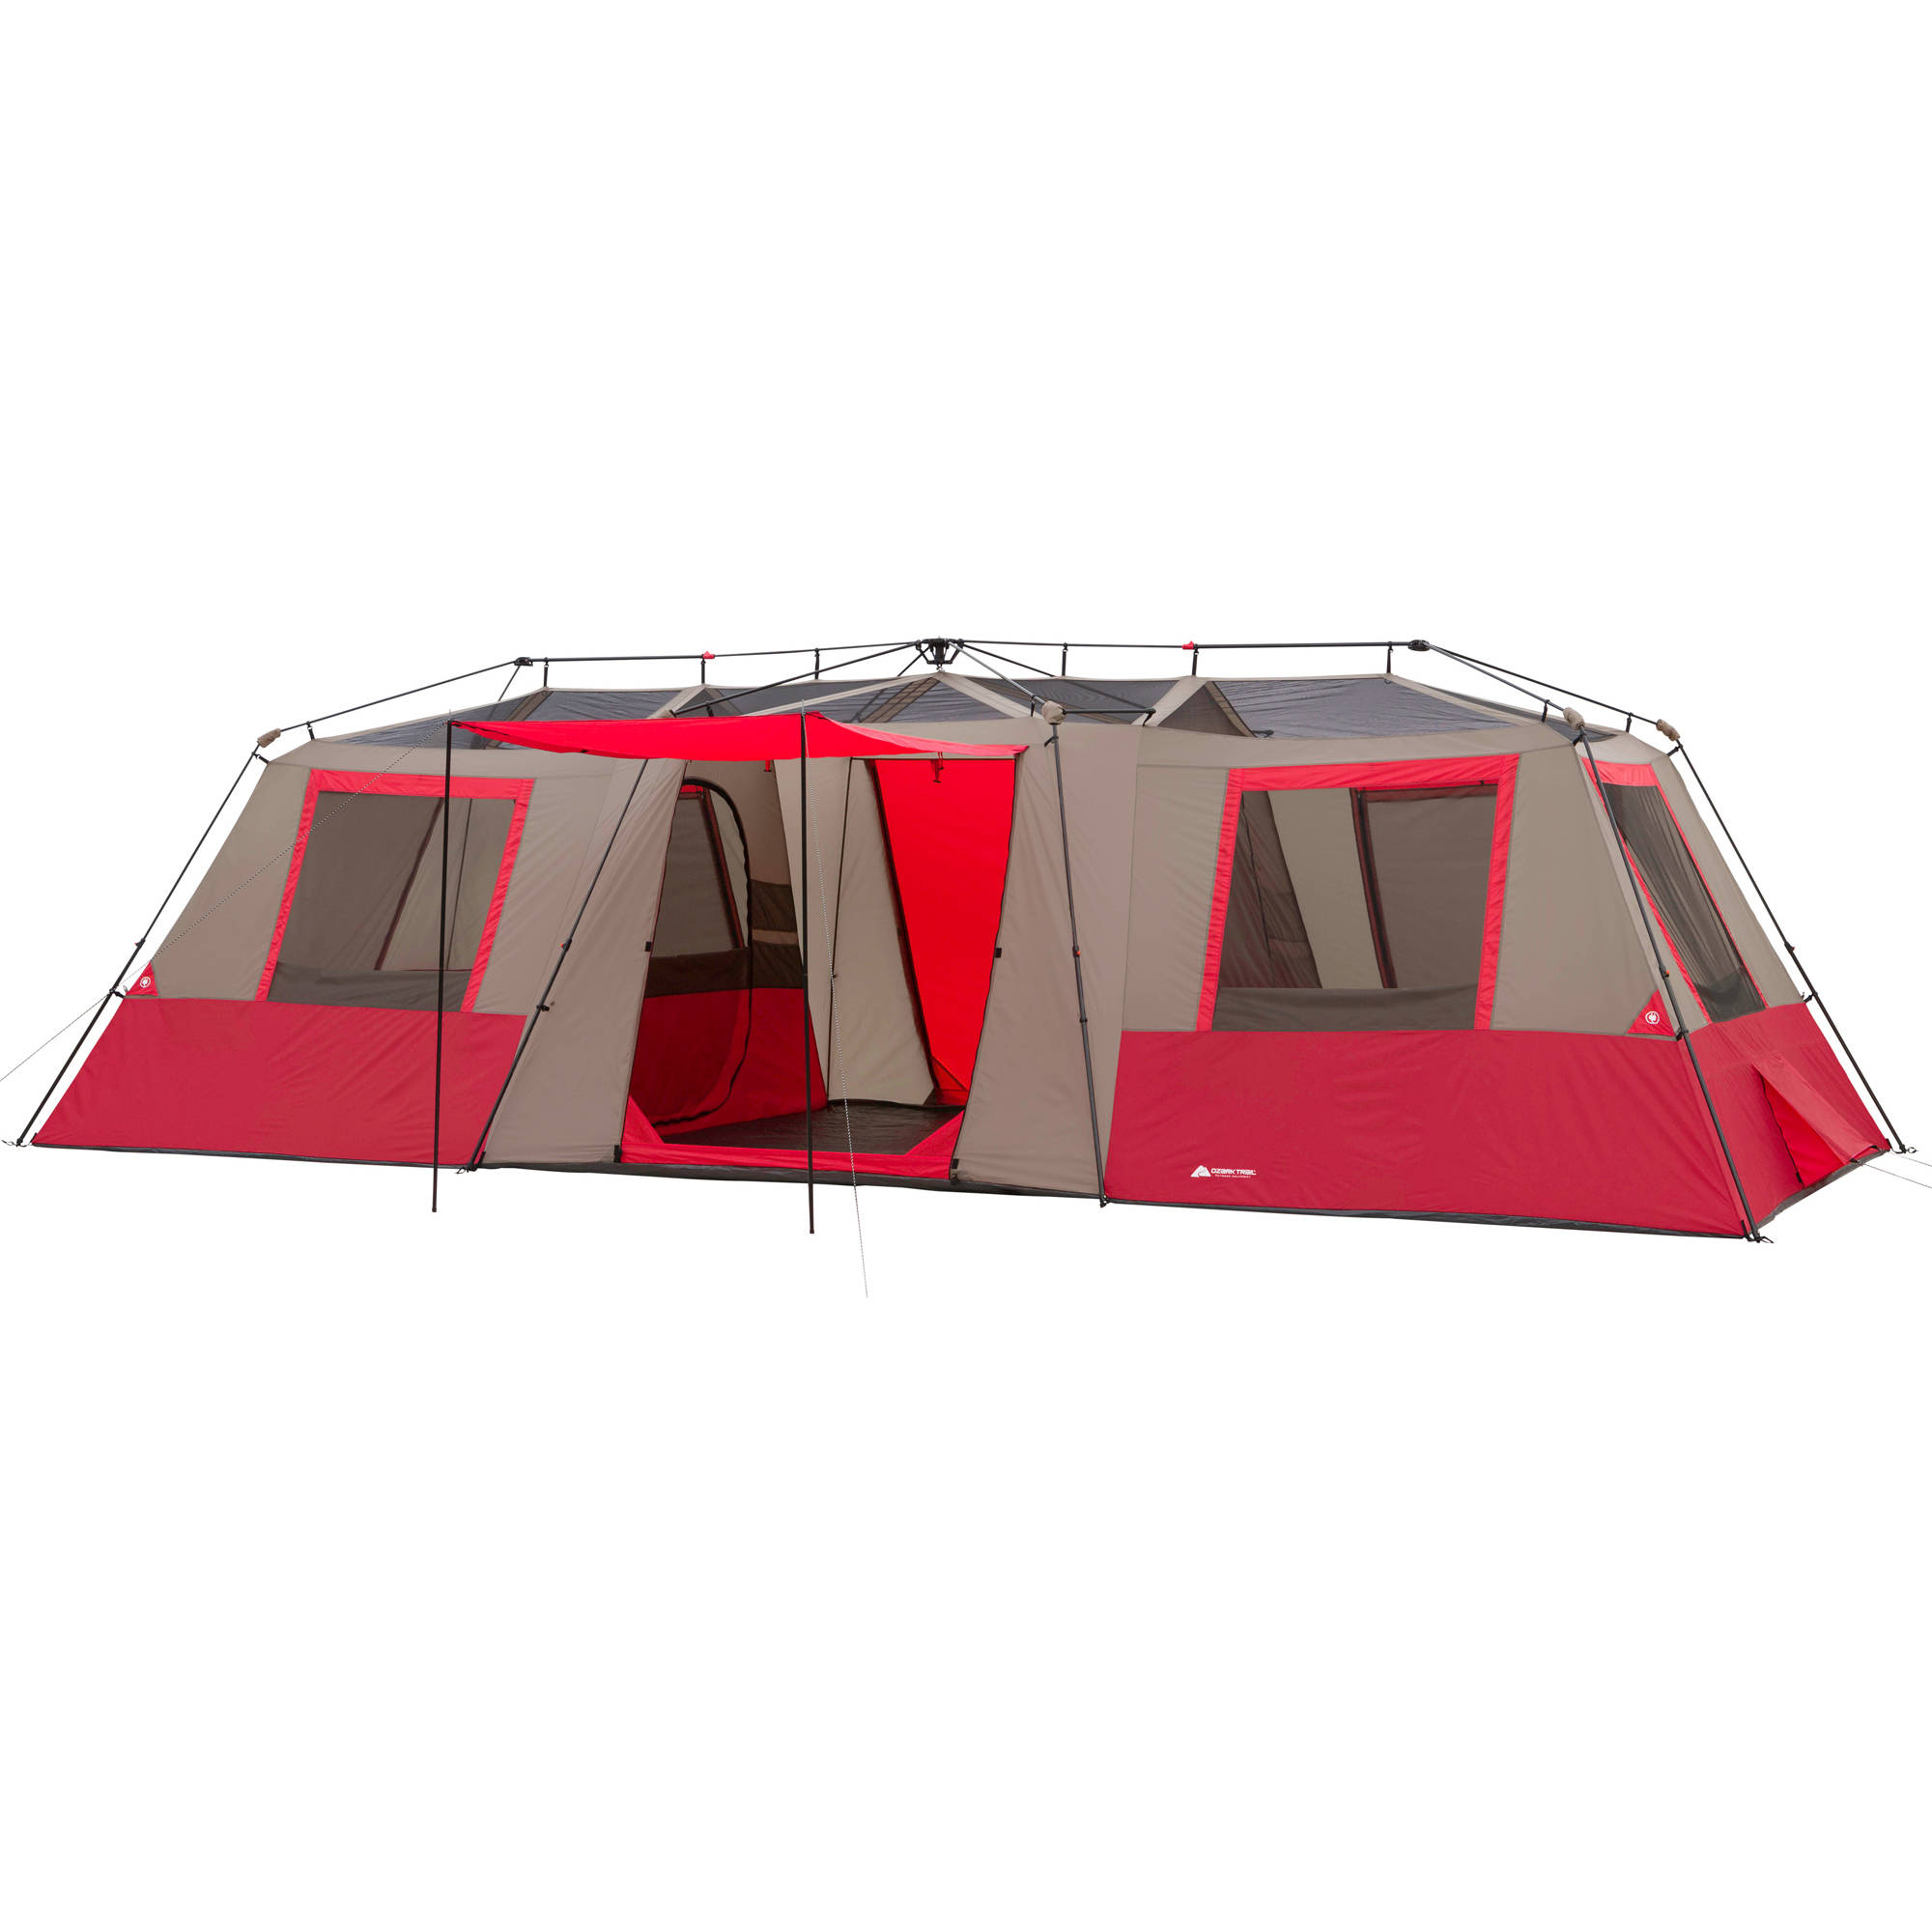 Ozark Trail 15 Person 3 Room Split Plan Instant Cabin Tent - Walmart.com  sc 1 st  Walmart.com & Ozark Trail 15 Person 3 Room Split Plan Instant Cabin Tent ...